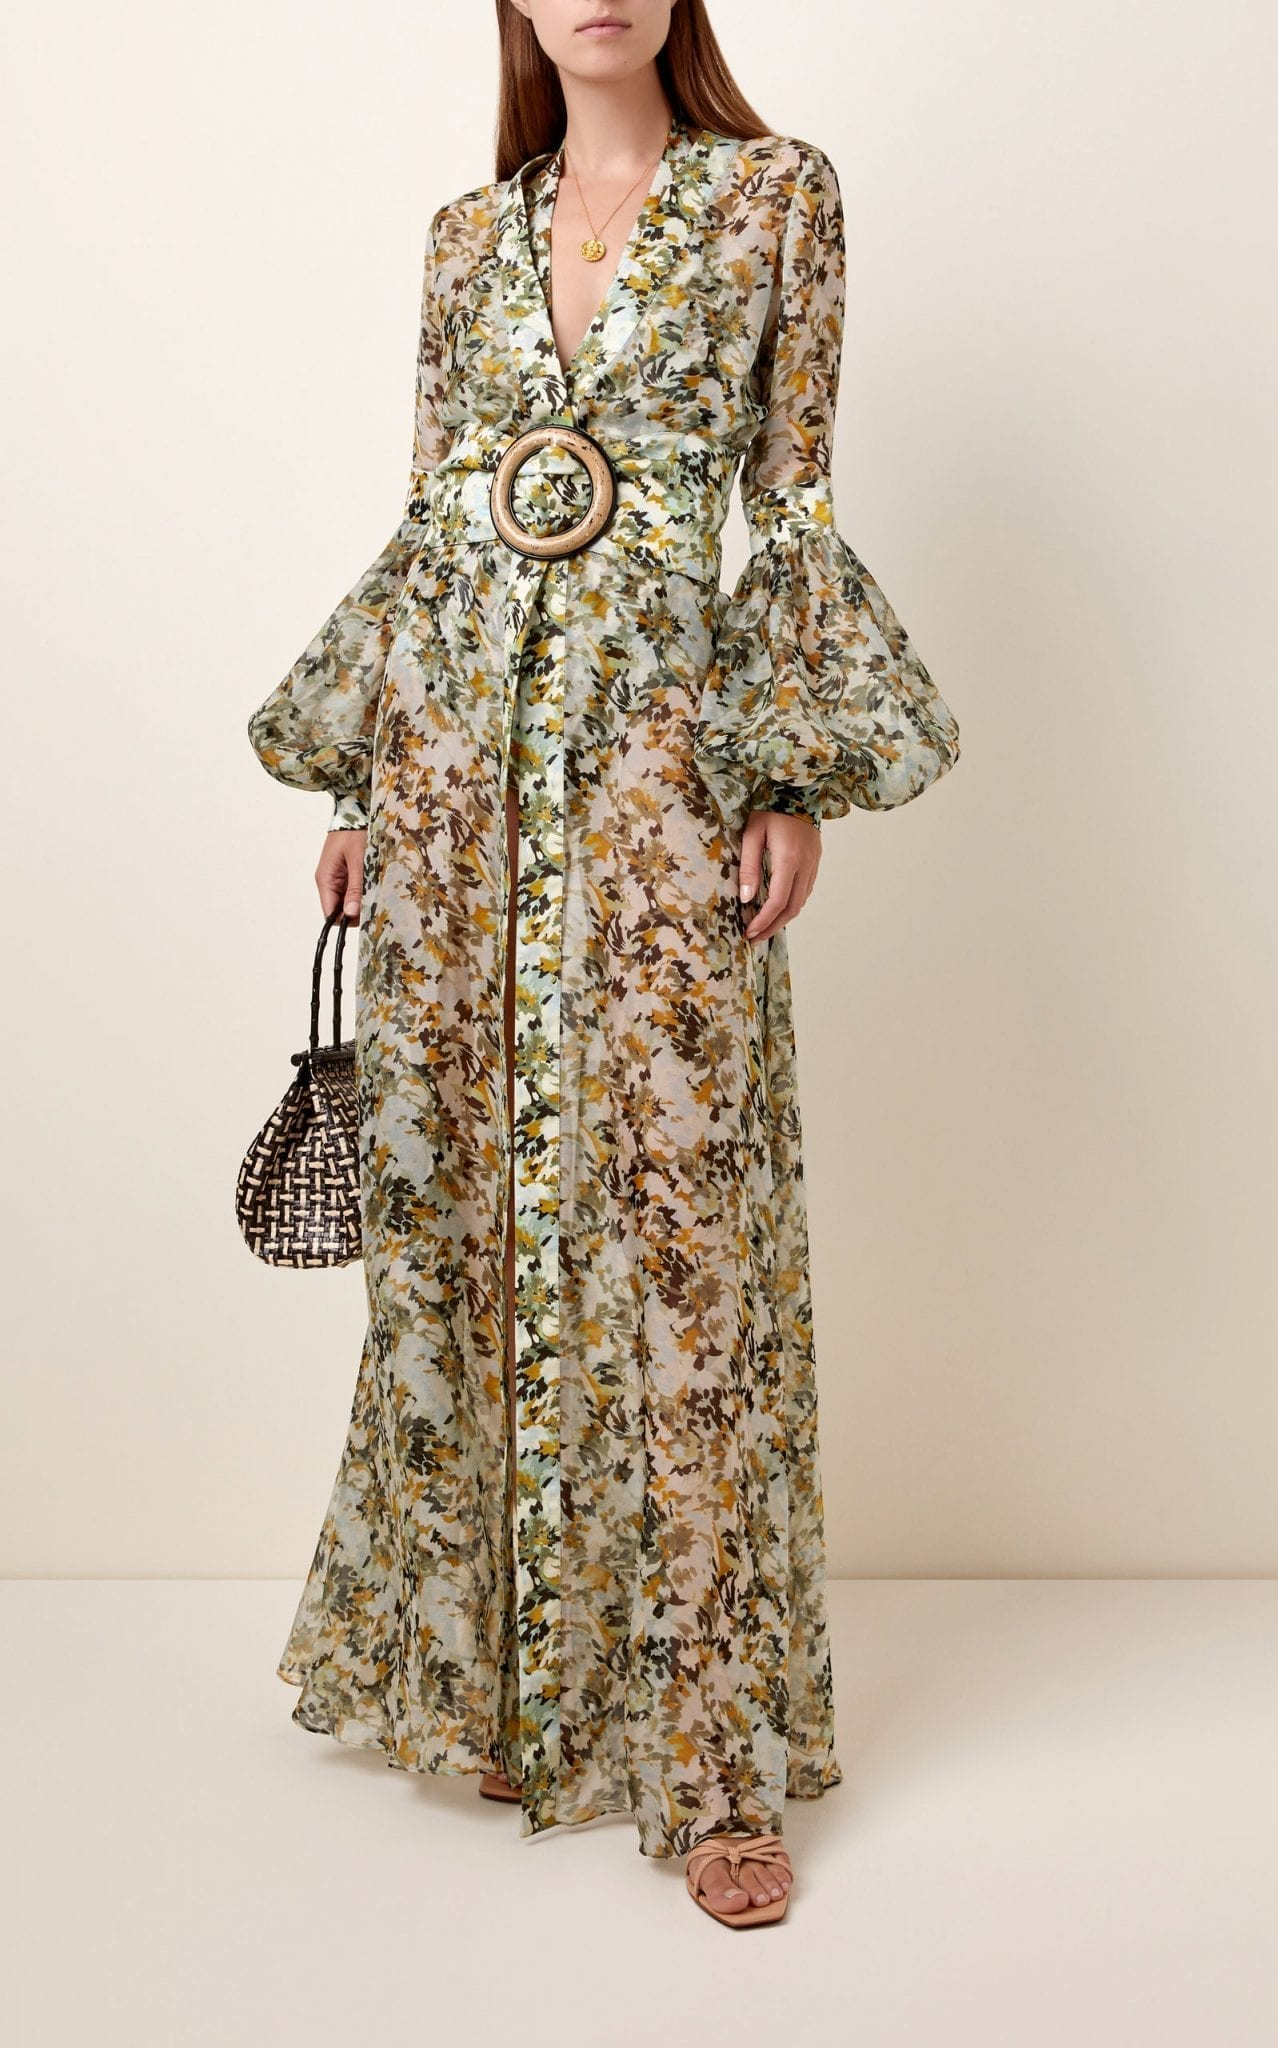 SILVIA TCHERASSI Farolillo Belted Silk-Chiffon Maxi Dress